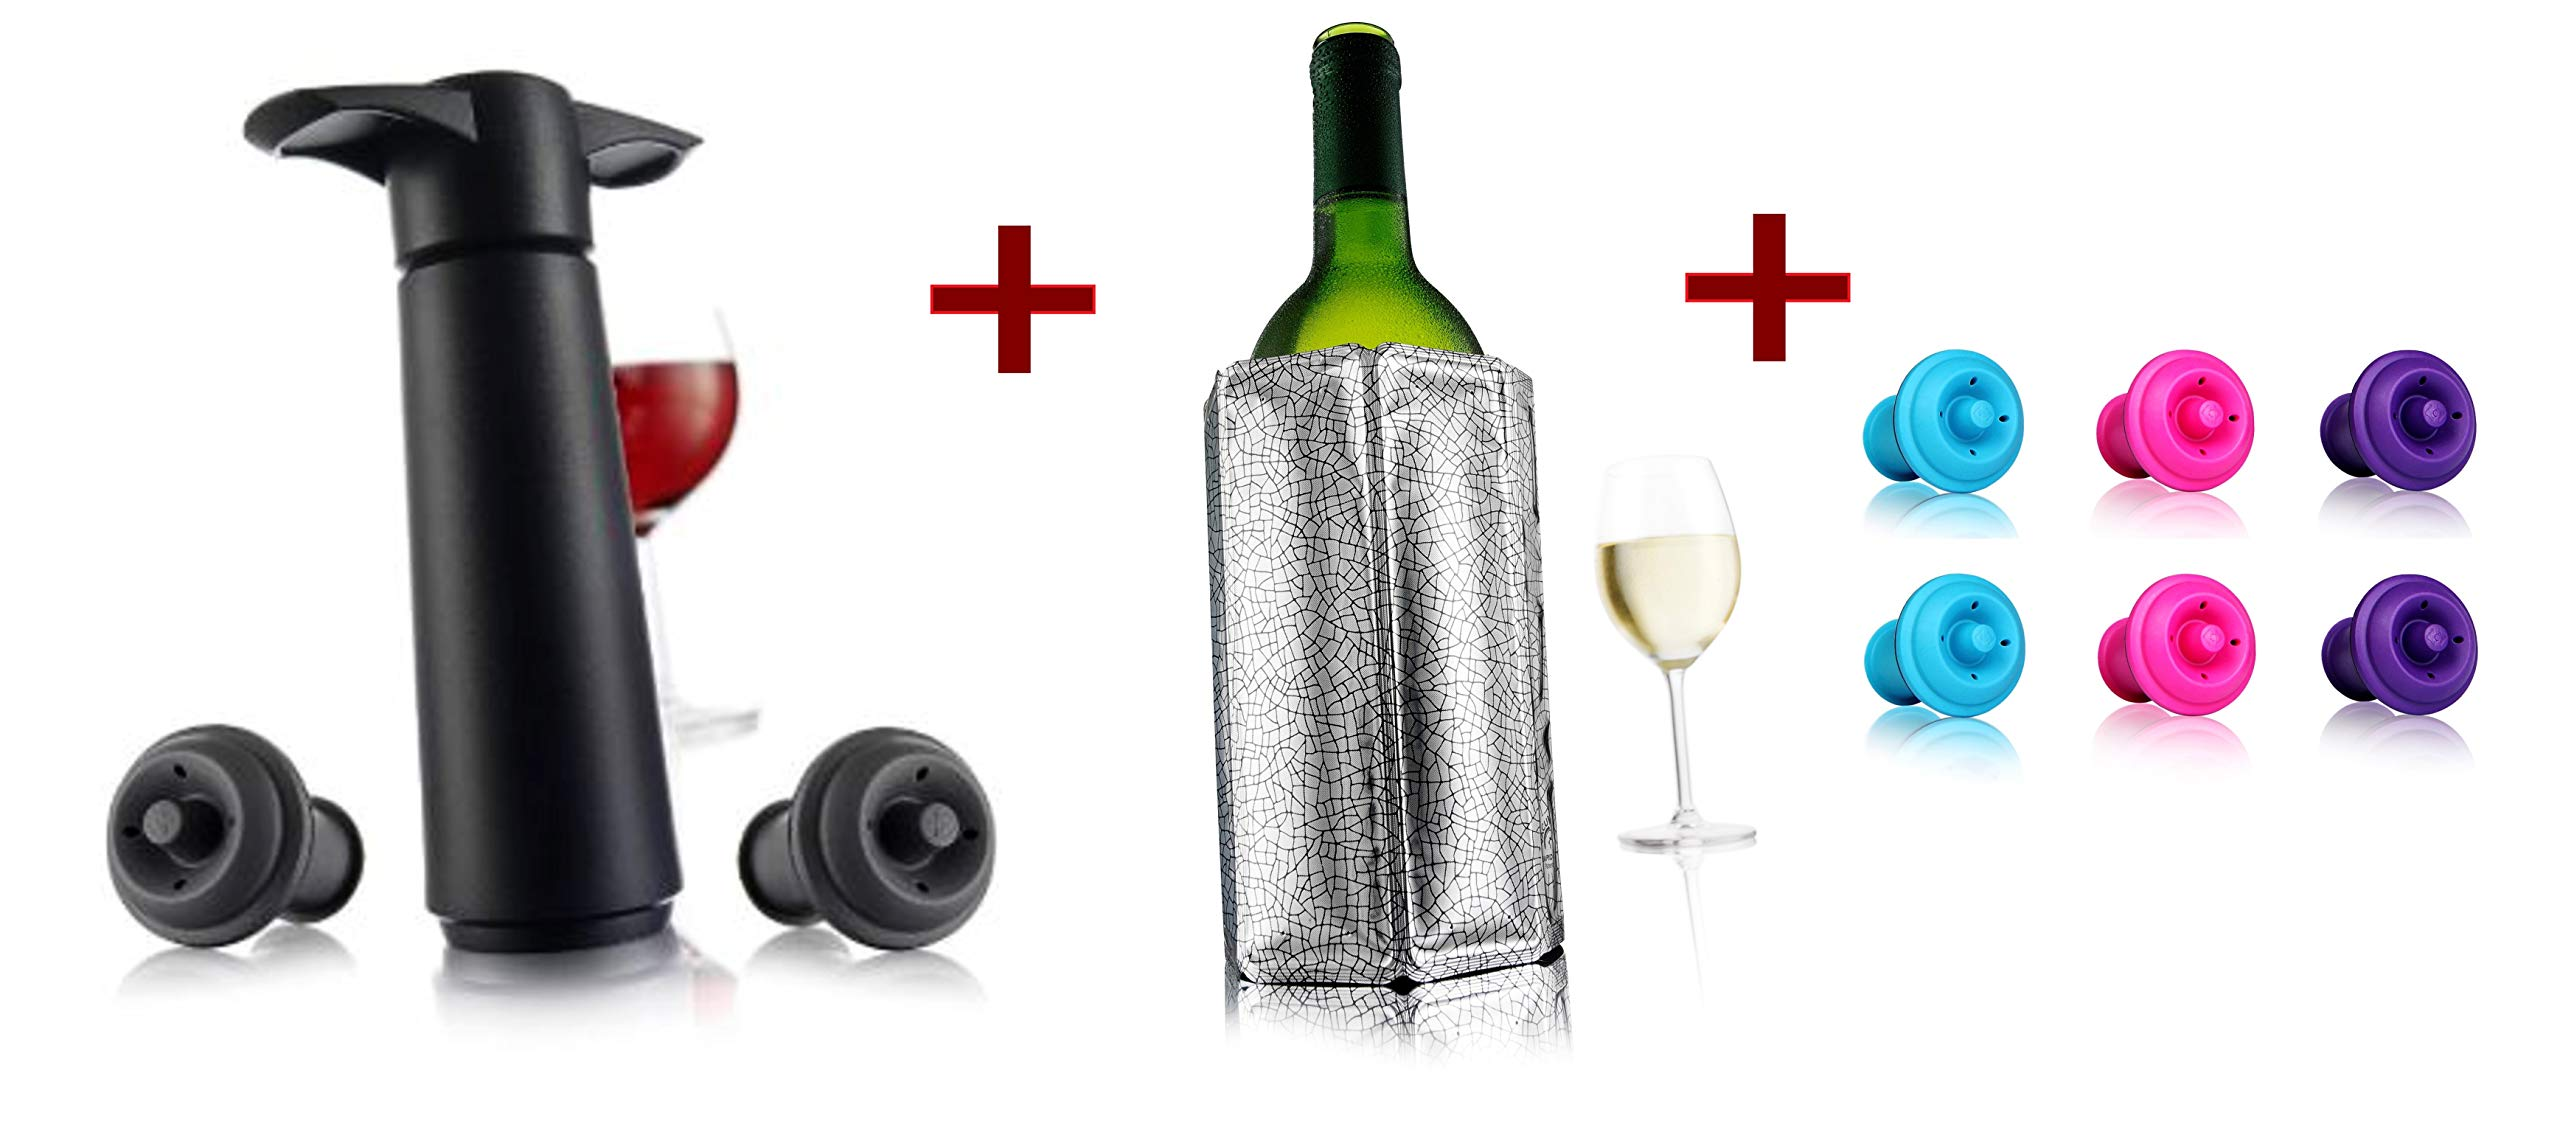 Vacu Vin Wine Saver Pump, Black with 8 Vacuum Bottle Stoppers, 2 Gray and 6 Color stoppers bundle with Vacu Vin Rapid Ice Wine Cooler - Silver by Vacu Vin